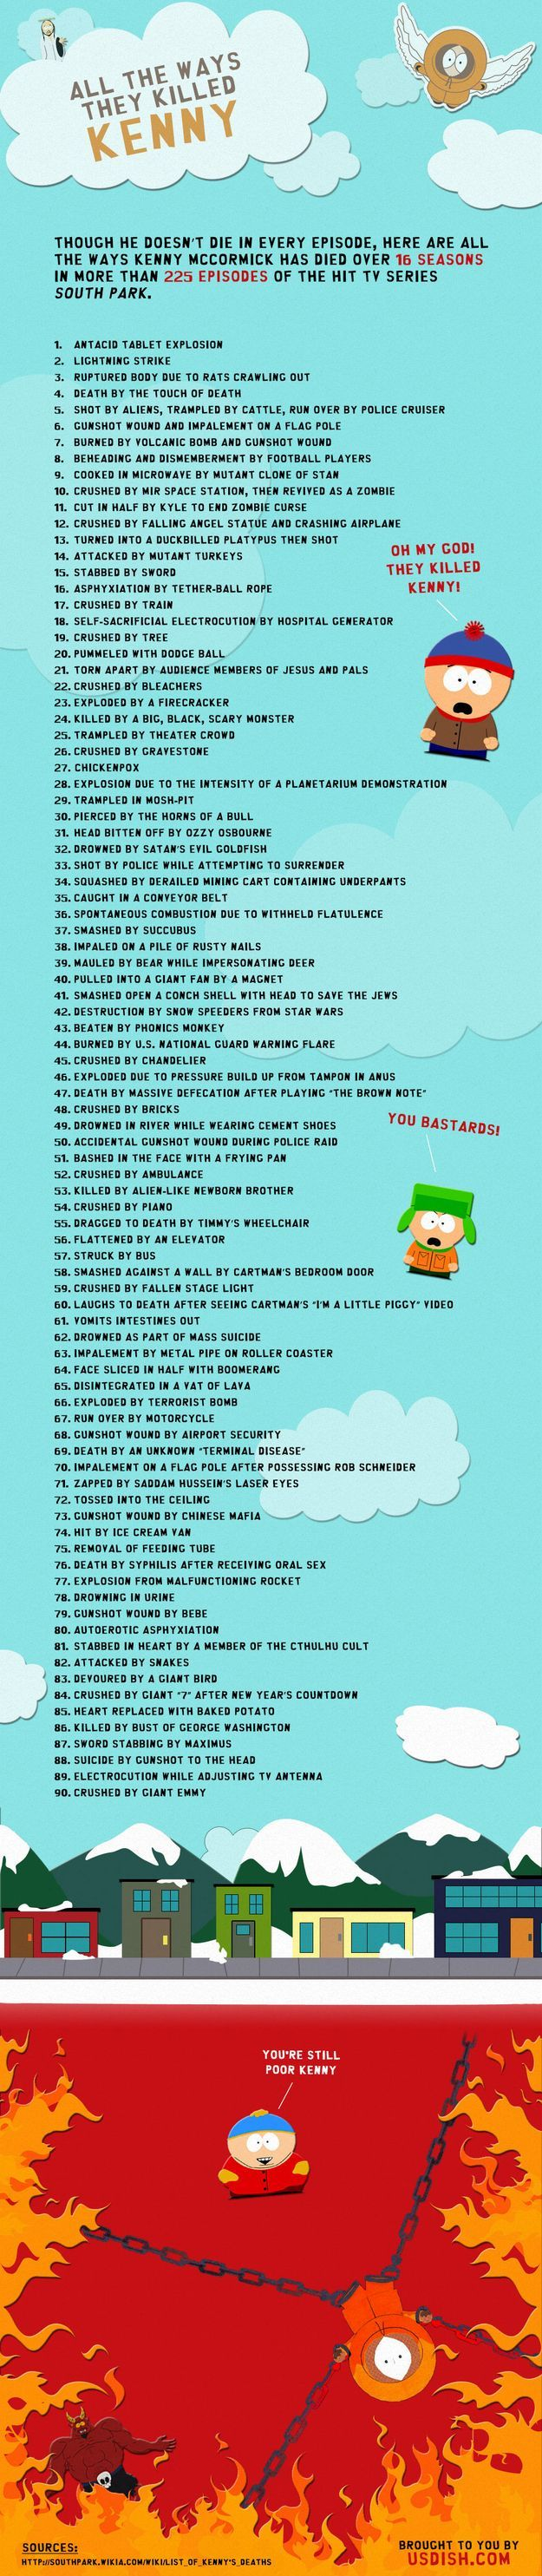 KENNY MCCORMICK, THE BELOVED CHARACTER FROM SOUTH PARK, HAS DIED OVER AND OVER AGAIN DURING THE COURSE OF 225 EPISODES OF THE HIT TV SERIES. WE'VE COMPILED EVERY SINGLE WAY THAT KENNY HAS DIED, IN A TRIBUTE TO KENNY'S MEMORY.